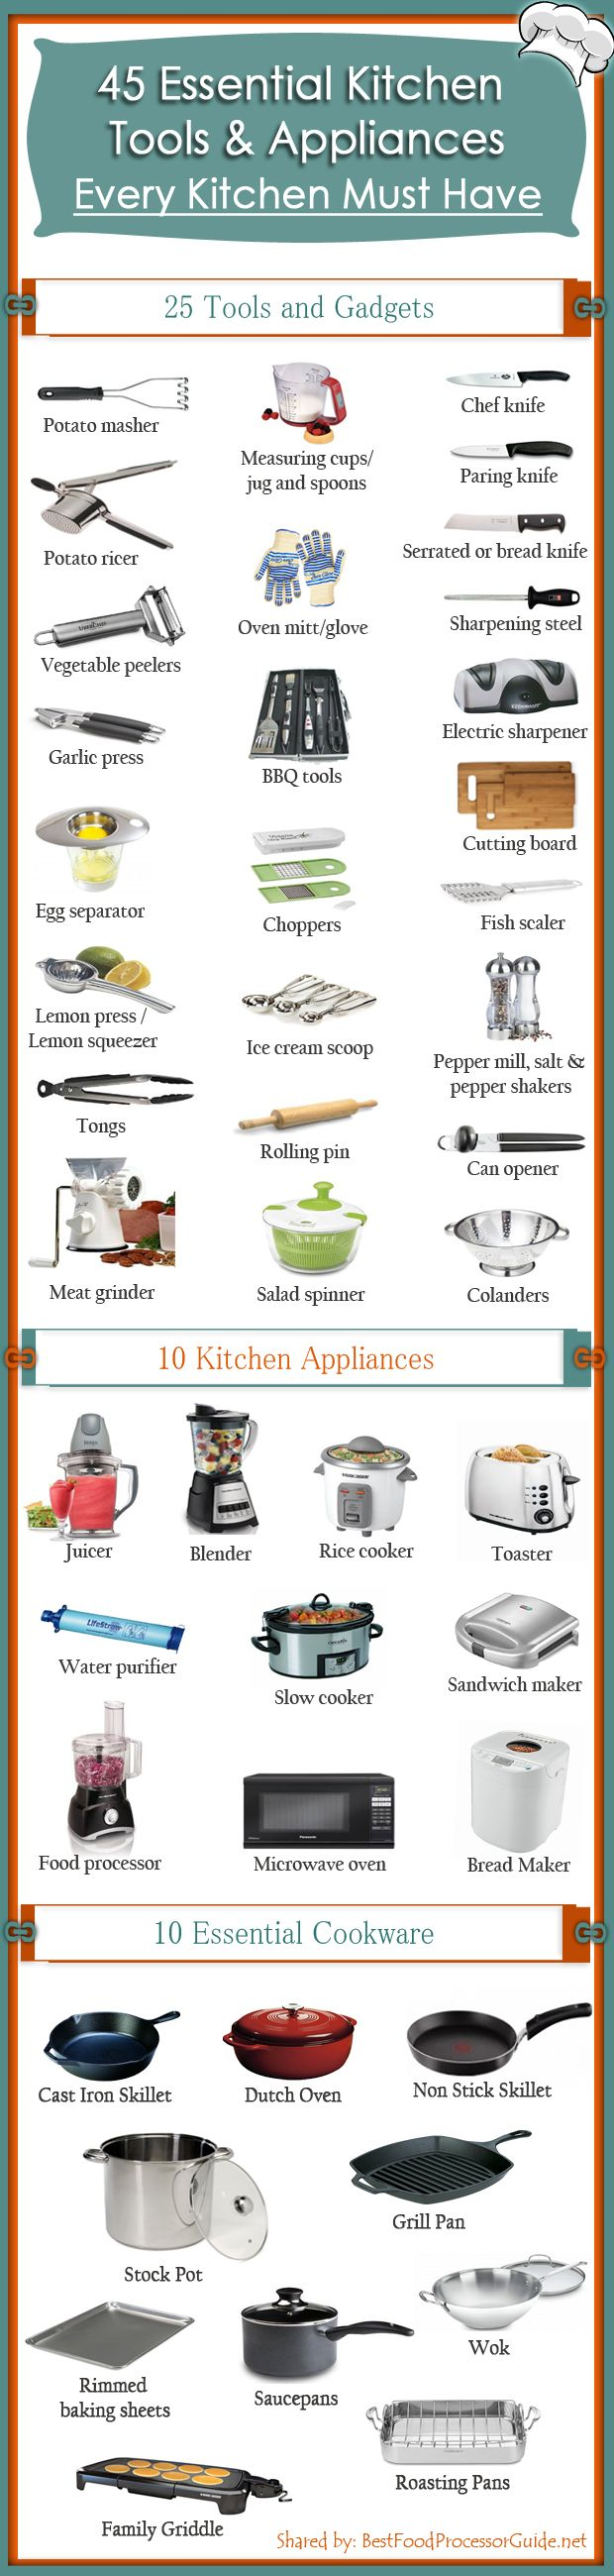 We Want To Create One Of The Best Kitchen Tools And Gadgets